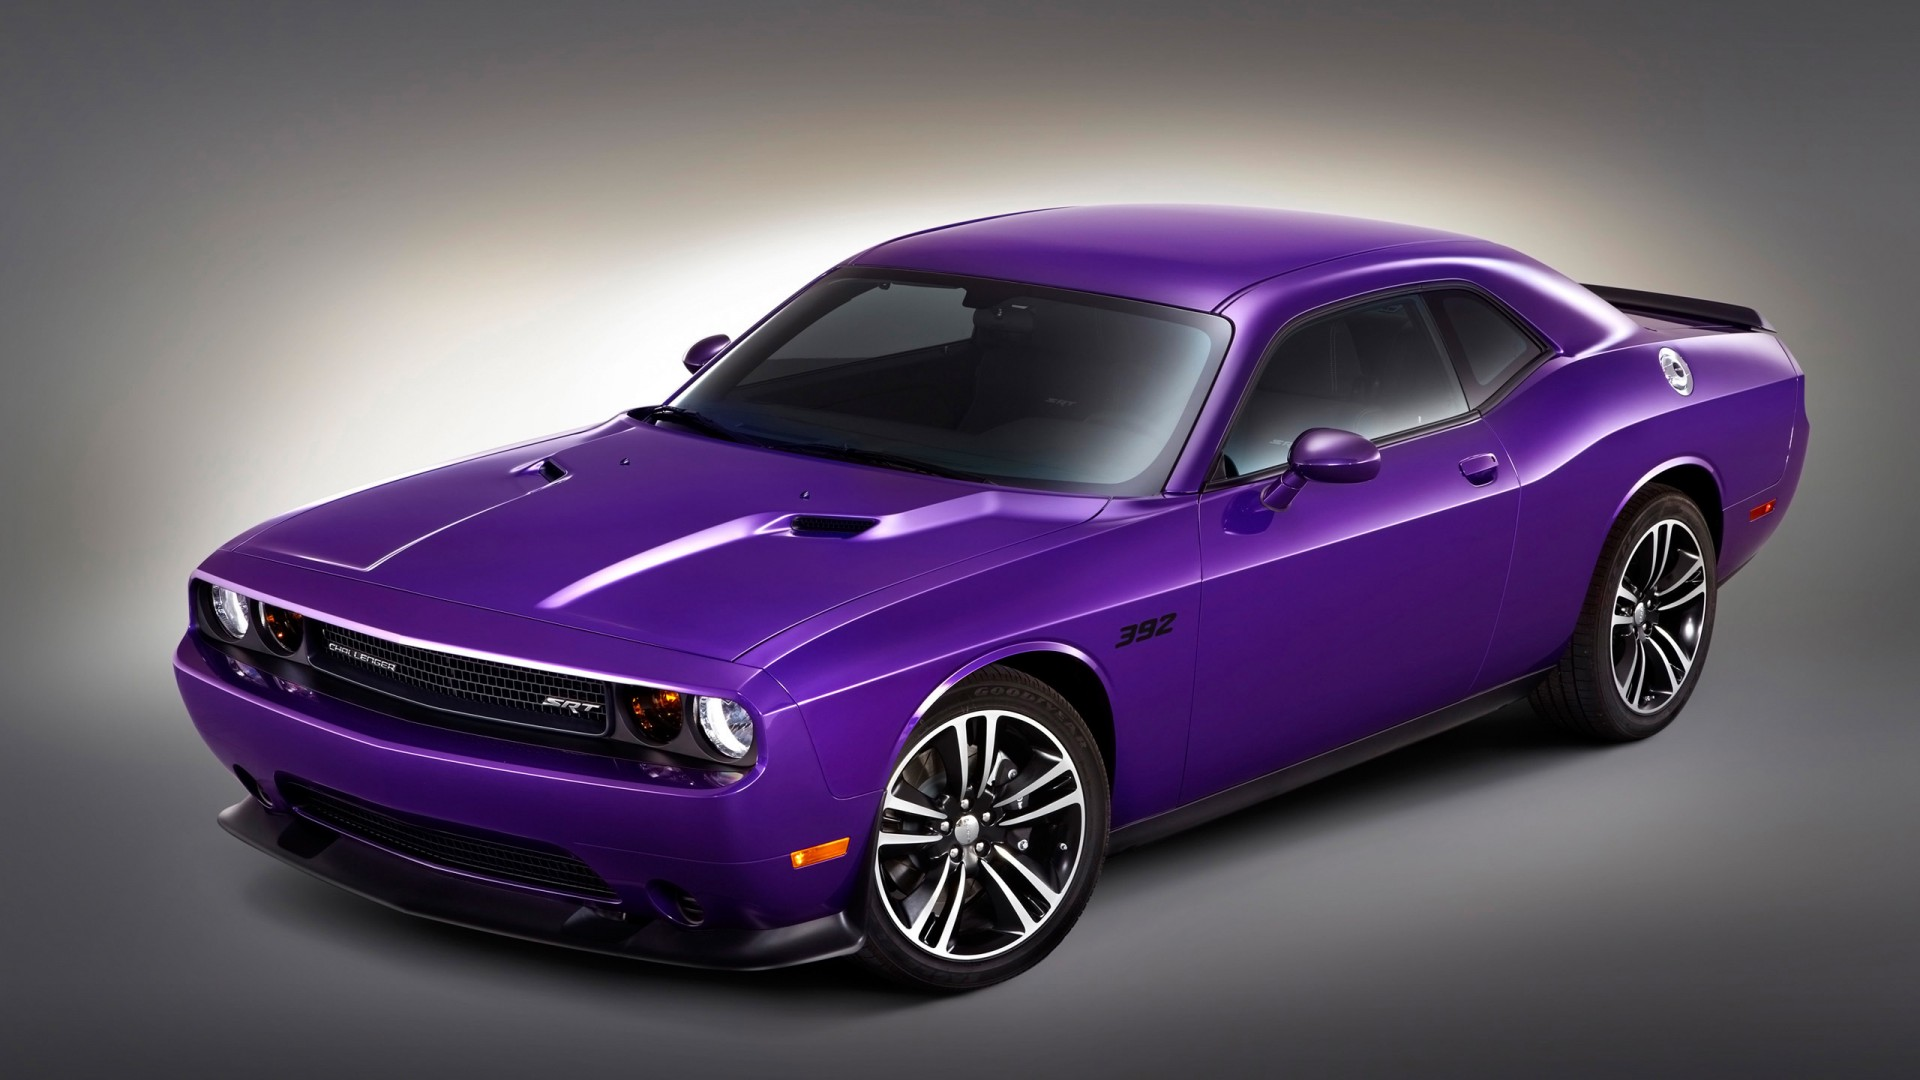 2014 Dodge Challenger Srt Wallpaper Hd Car Wallpapers